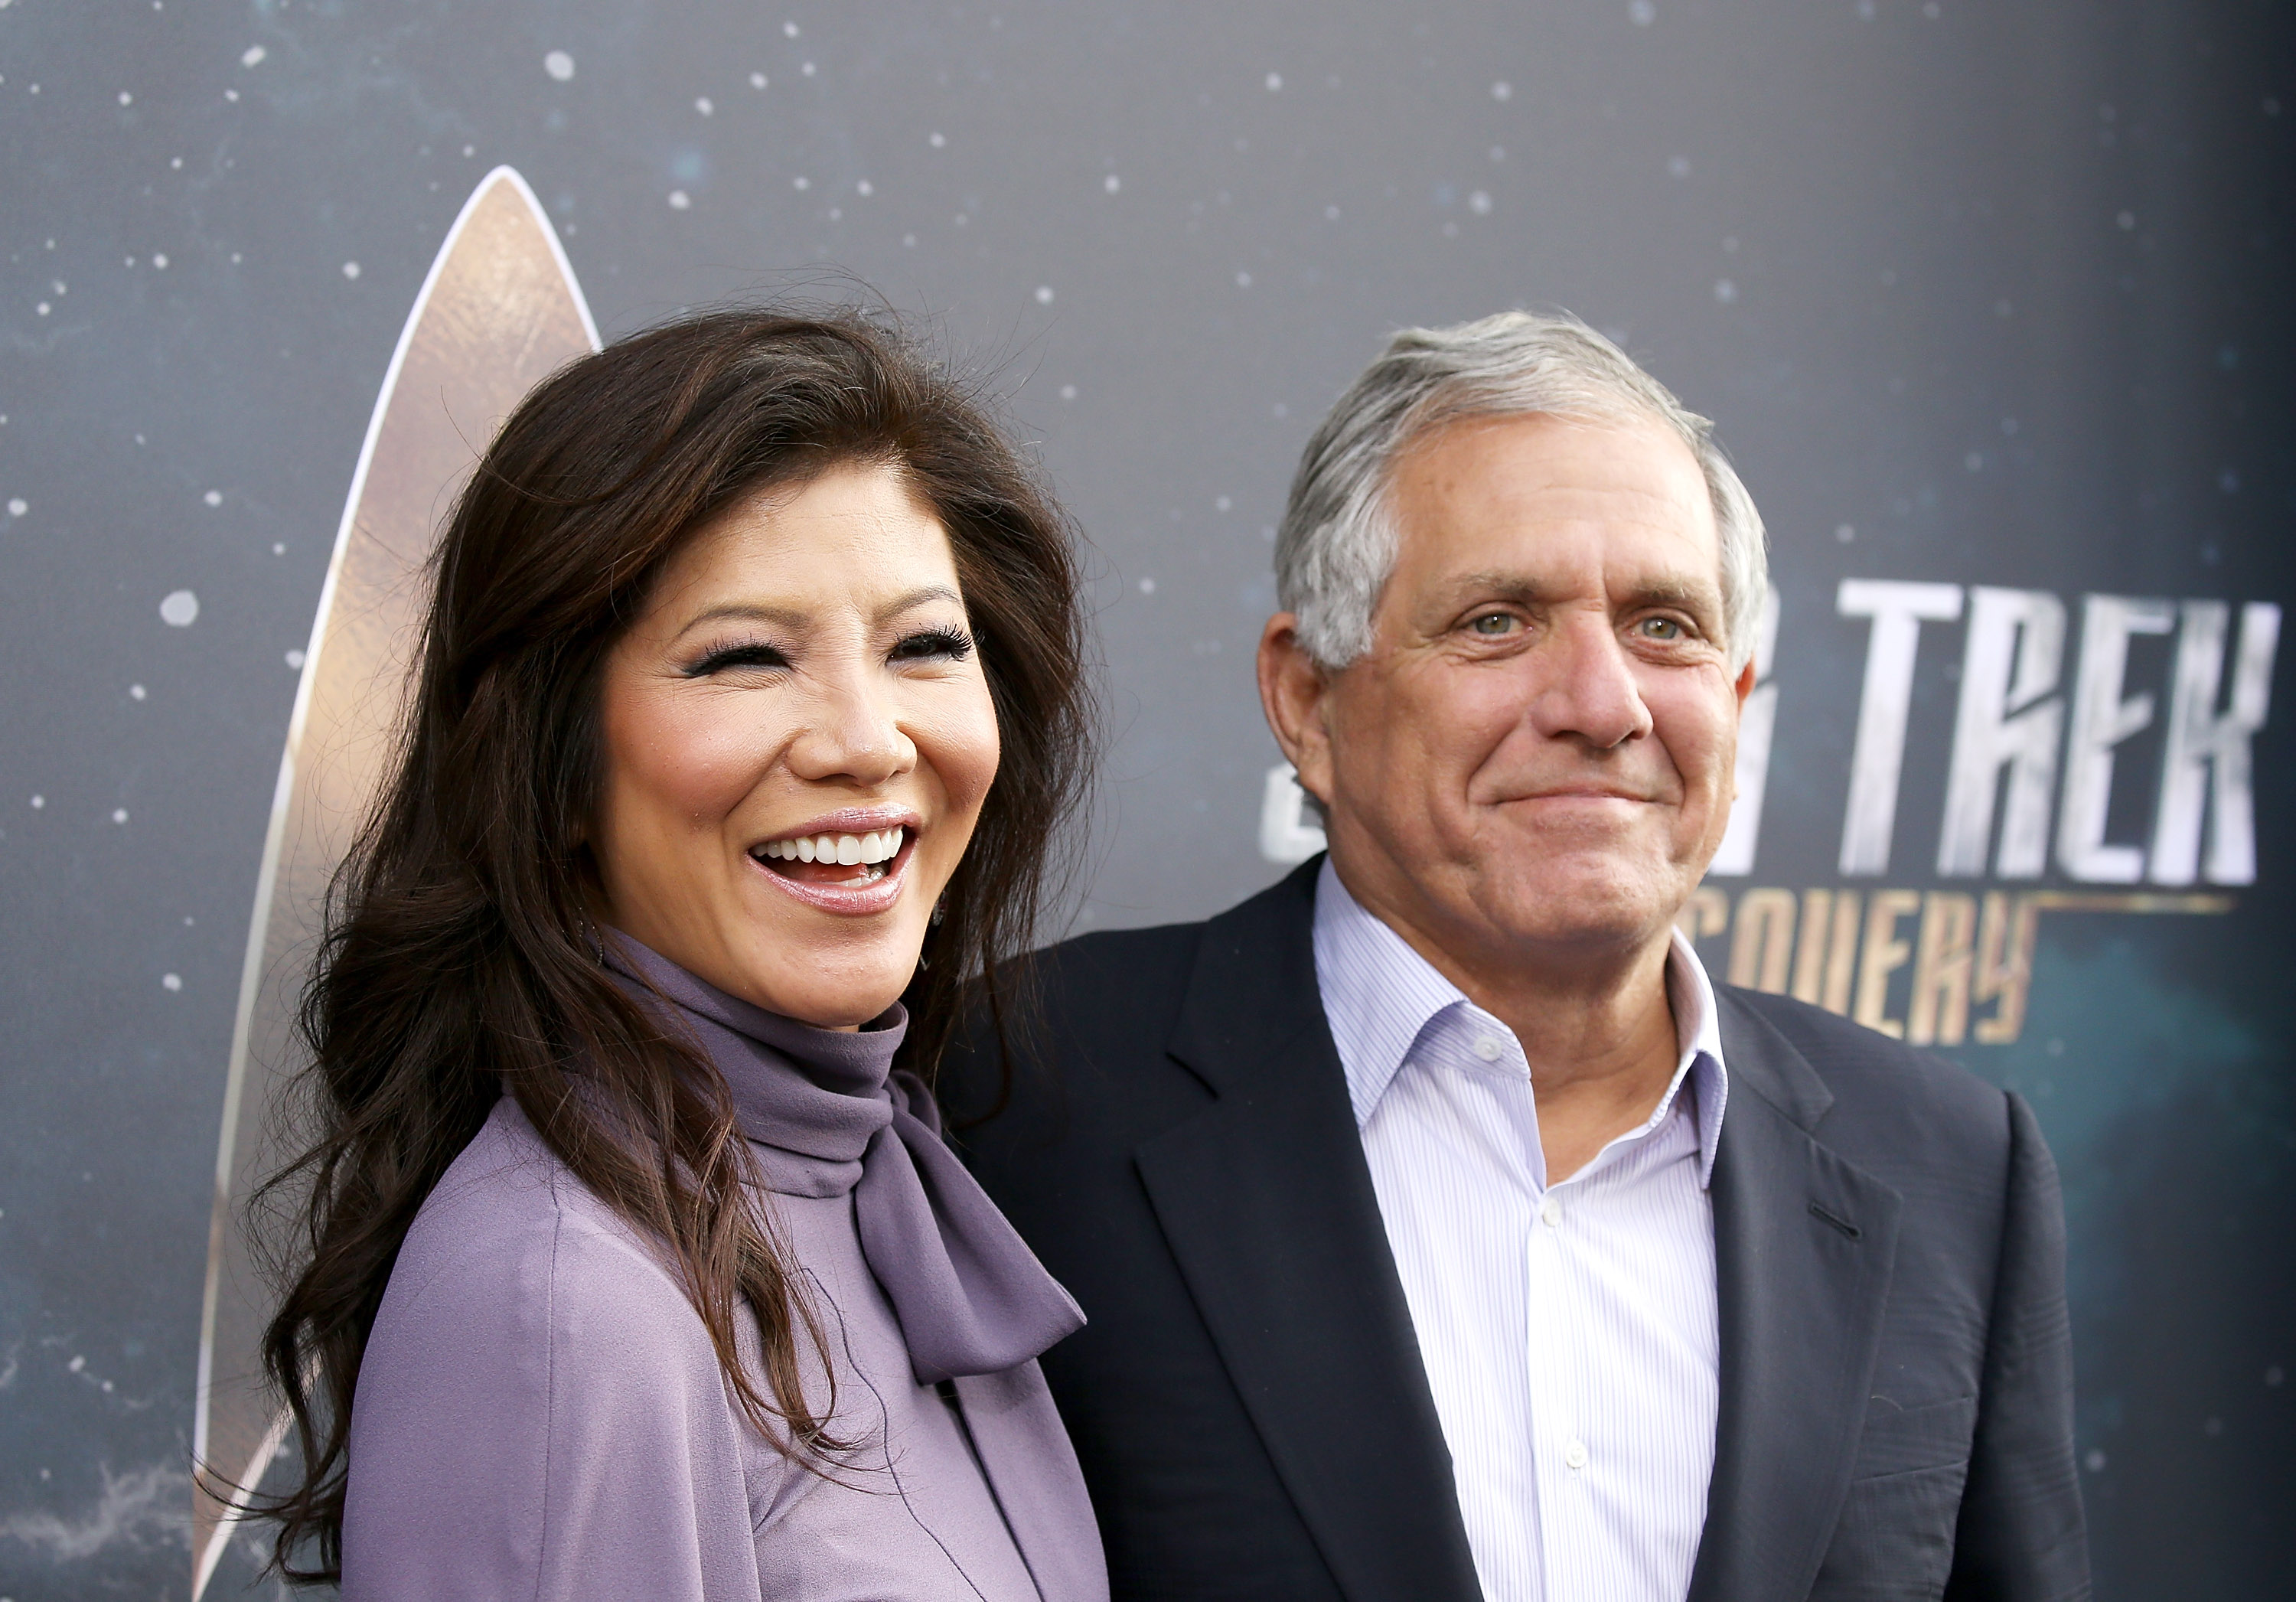 Julie Chen and Les Moonves attend the Los Angeles premiere of CBS's  Star Trek: Discovery  held at The Cinerama Dome on September 19, 2017 in Los Angeles, California.